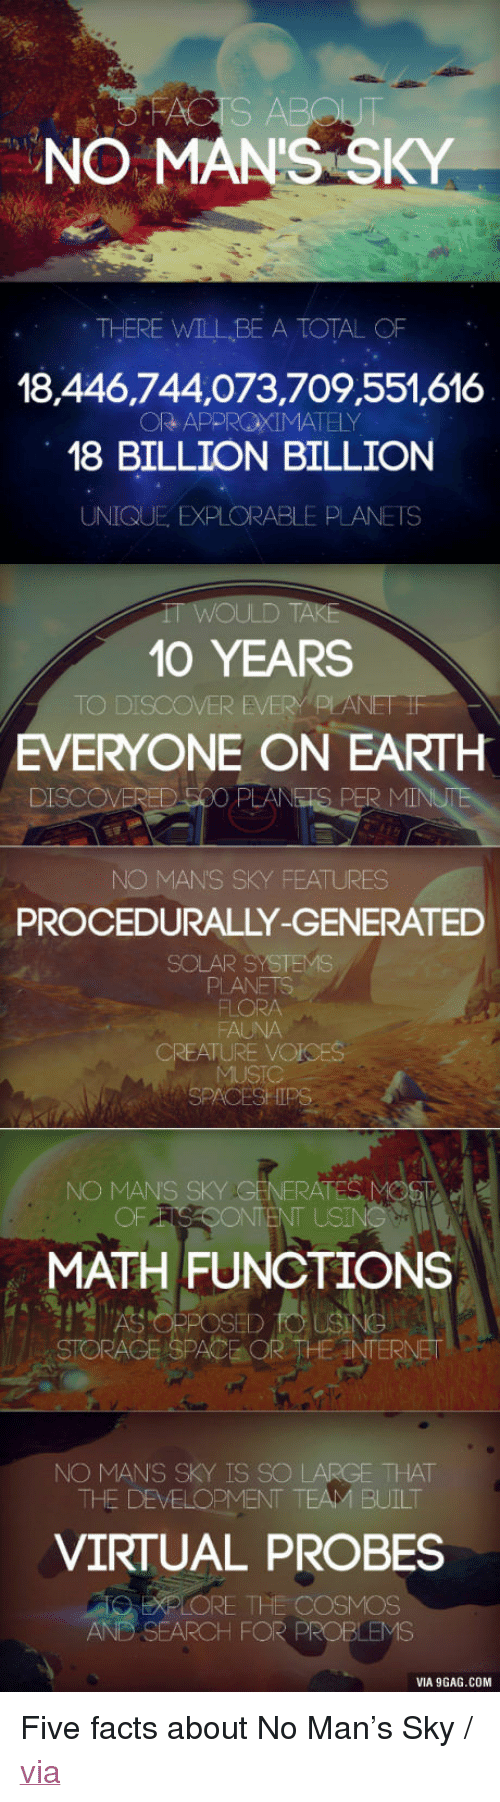 """18 Billion: NO MAN'S SKY  THERE WILL BE A TOTAL OF  18,446,744,073,709,551,616  18 BILLION BILLION  UNIQUE EXPLORABLE PLANETS  10 YEARS  EVERYONE ON EARTH  DI  NO  SKY FEATURES  PROCEDURALLY-GENERATED  FLORA  URE  OFA  MATH FUNCTIONS  STORAGE SPACE OR THE  NO MANS SKY IS SO LARGE THAT  THE DEVELOPMENT TEAM BUILT  VIRTUAL PROBES  AND SEARCH FO  VIA 9GAG.COM <p>Five facts about No Man&rsquo;s Sky / <a href=""""http://9gag.com/gag/aGxBm3Z"""">via</a></p>"""